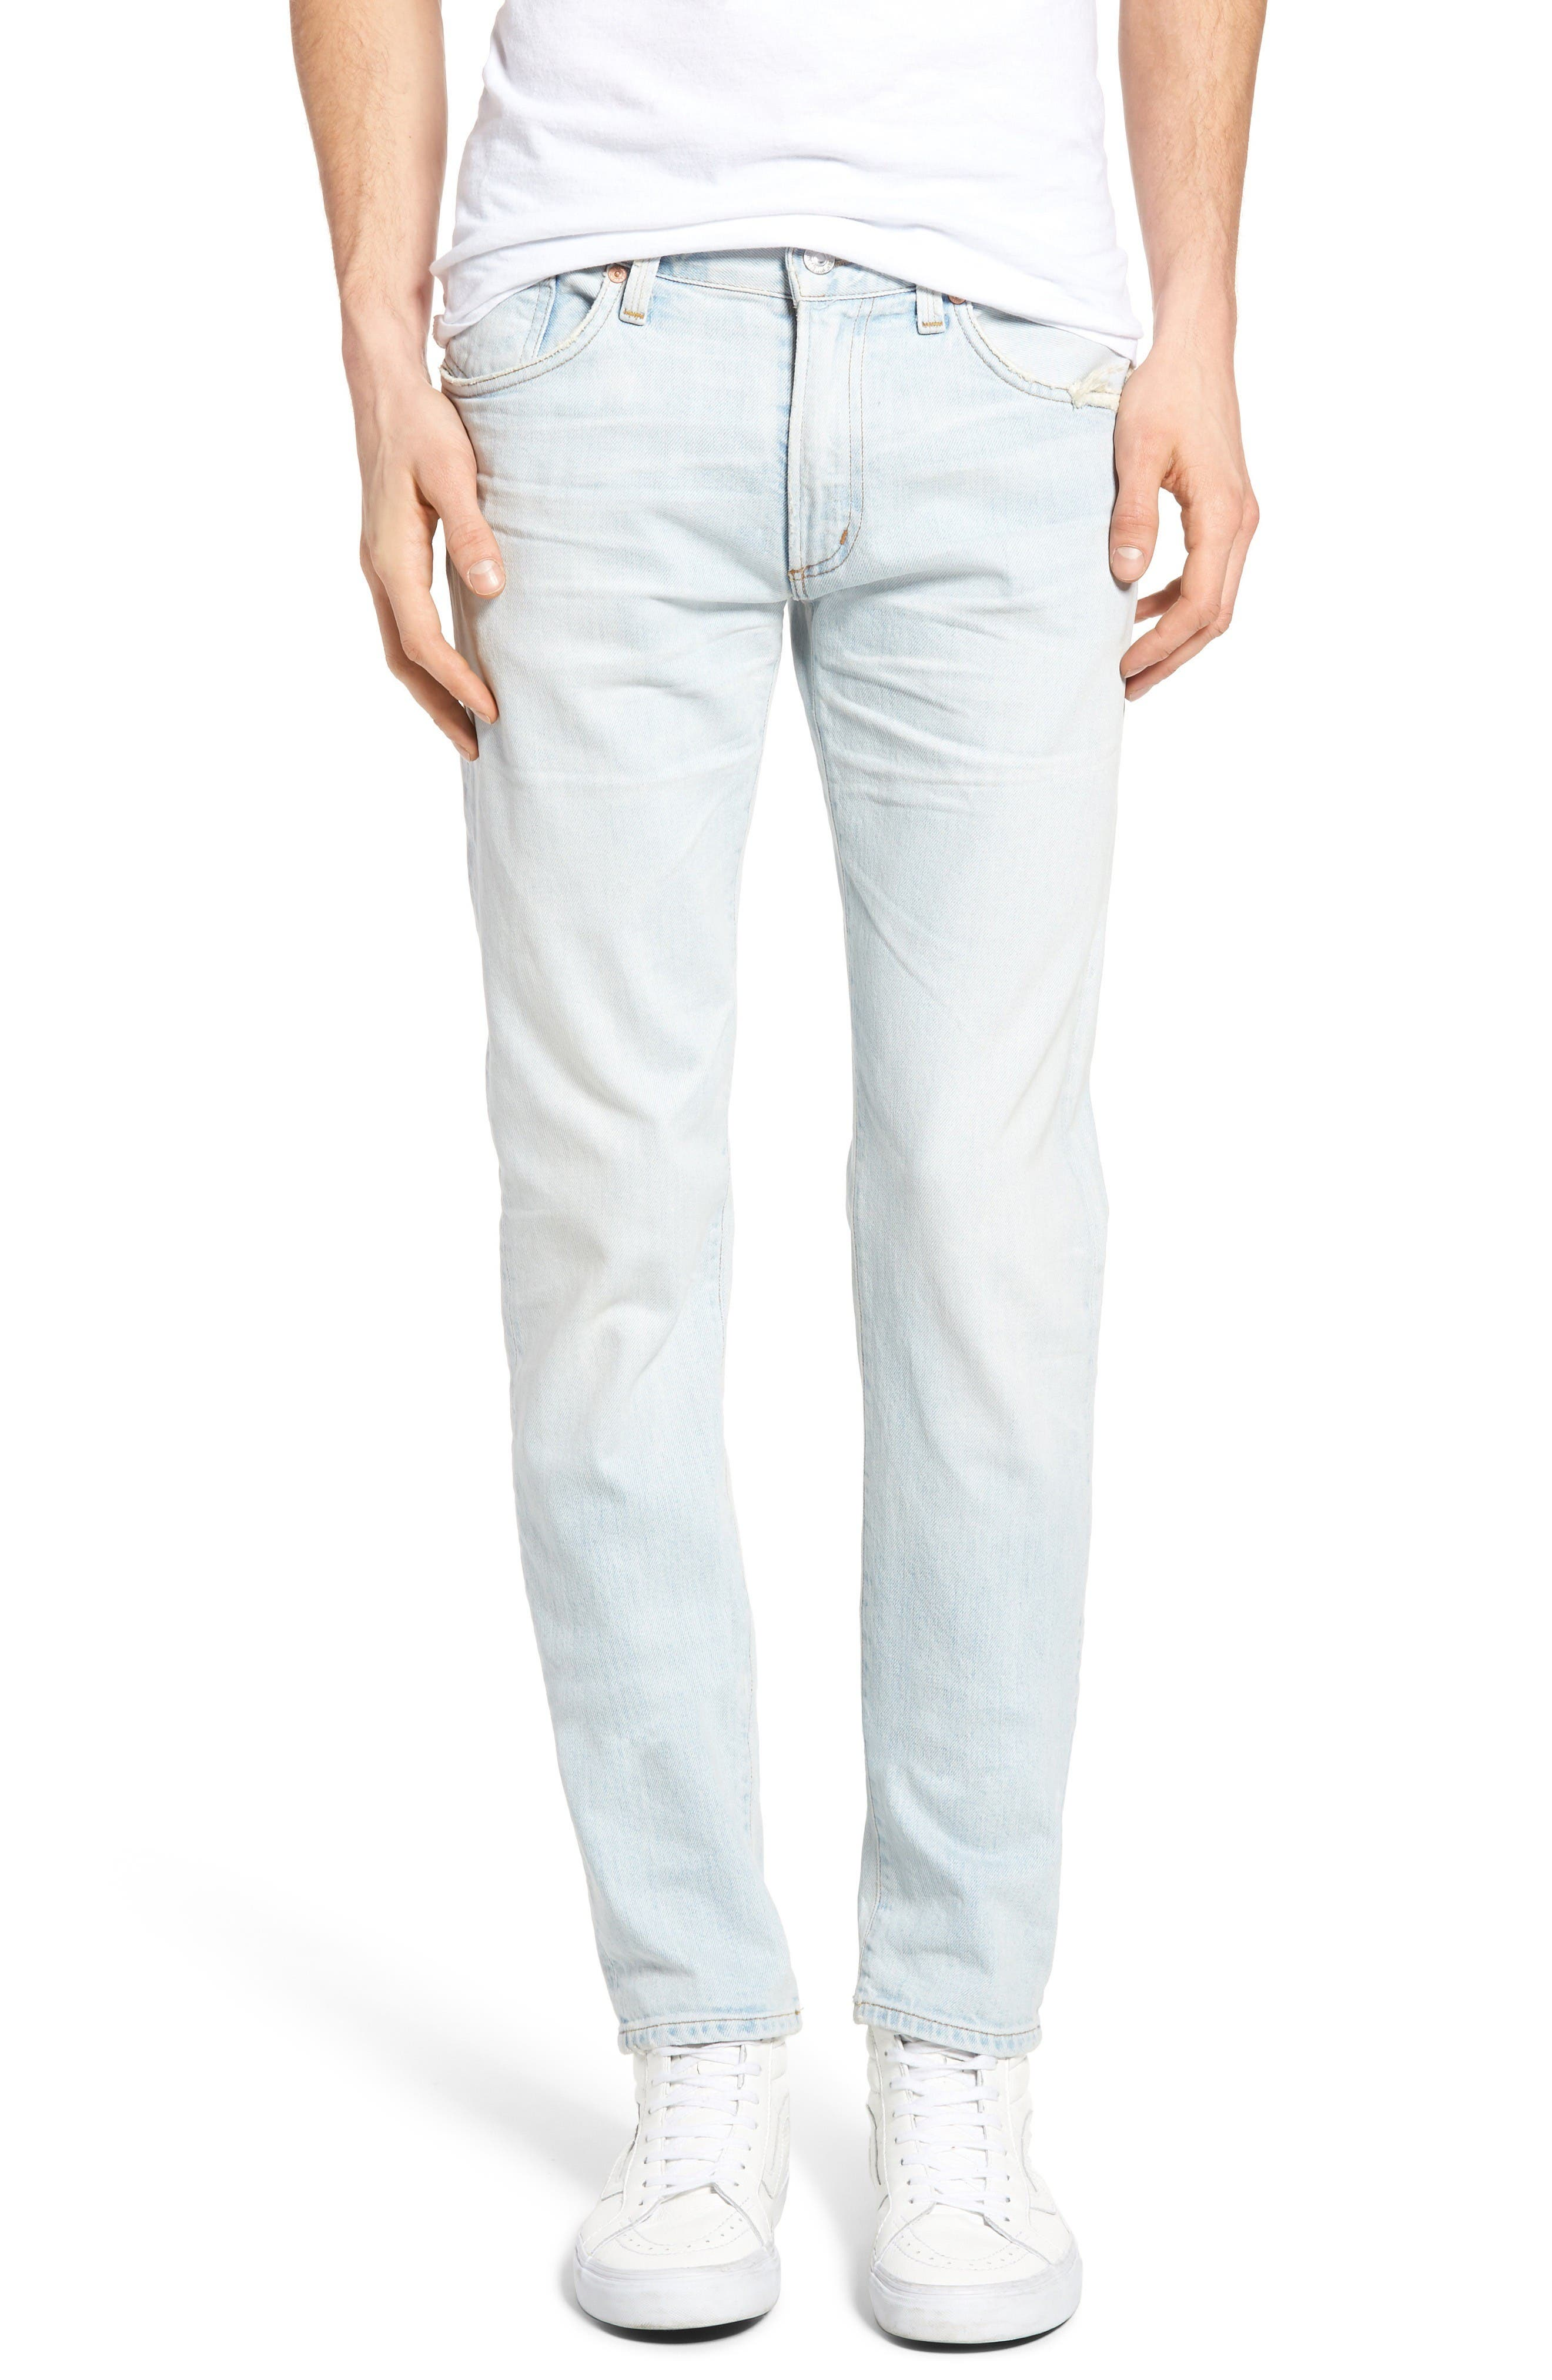 Alternate Image 1 Selected - Citizens of Humanity Noah Skinny Fit Jeans (Mirage)